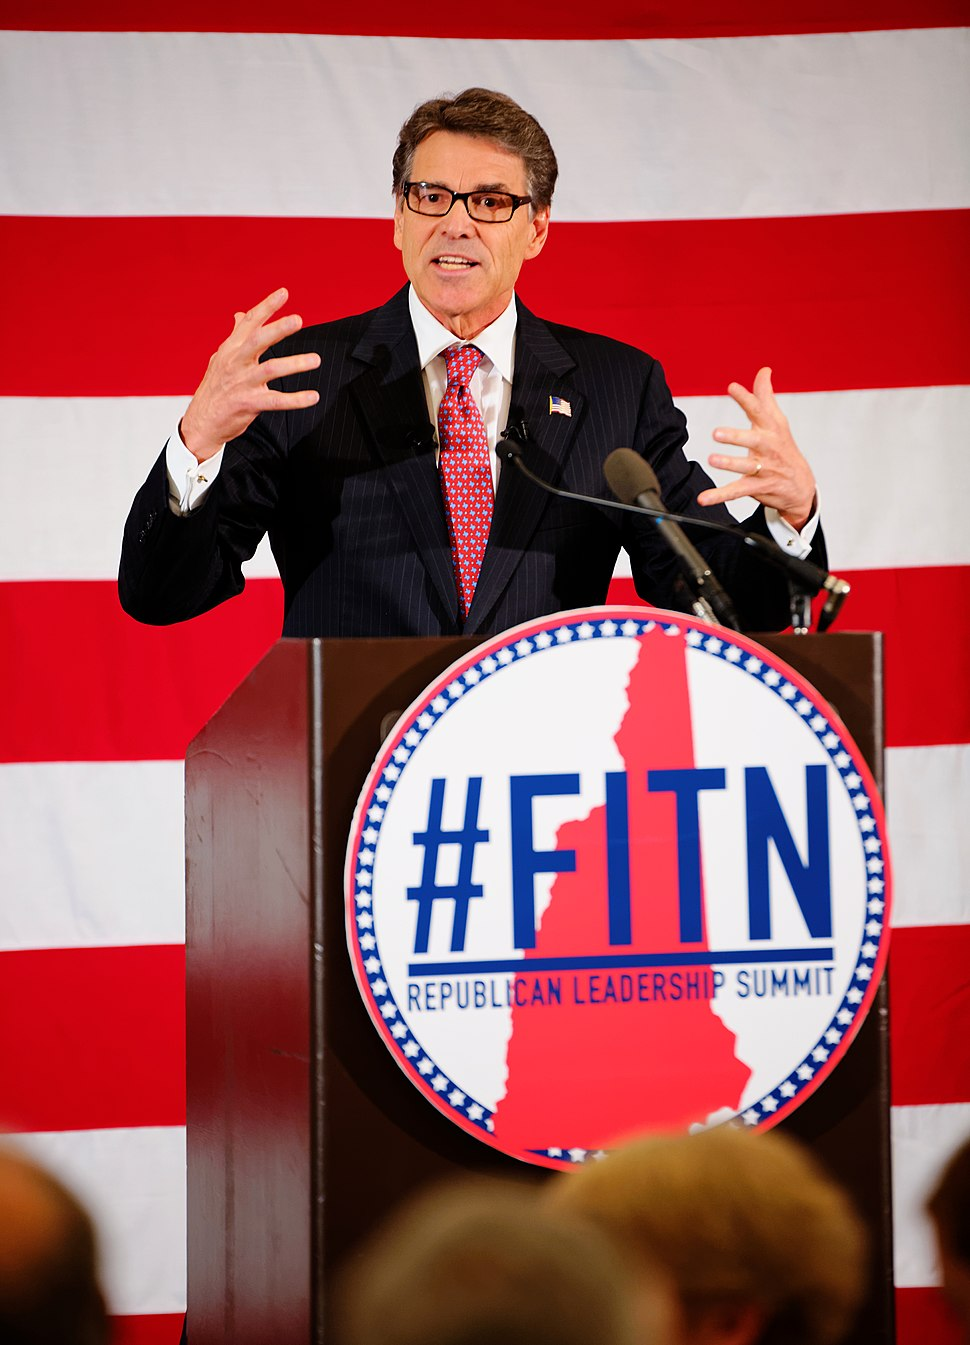 Former Texas Governor Rick Perry speaking at 2015 FITN (First in the Nation) Republican Leadership Summit in New Hampshire